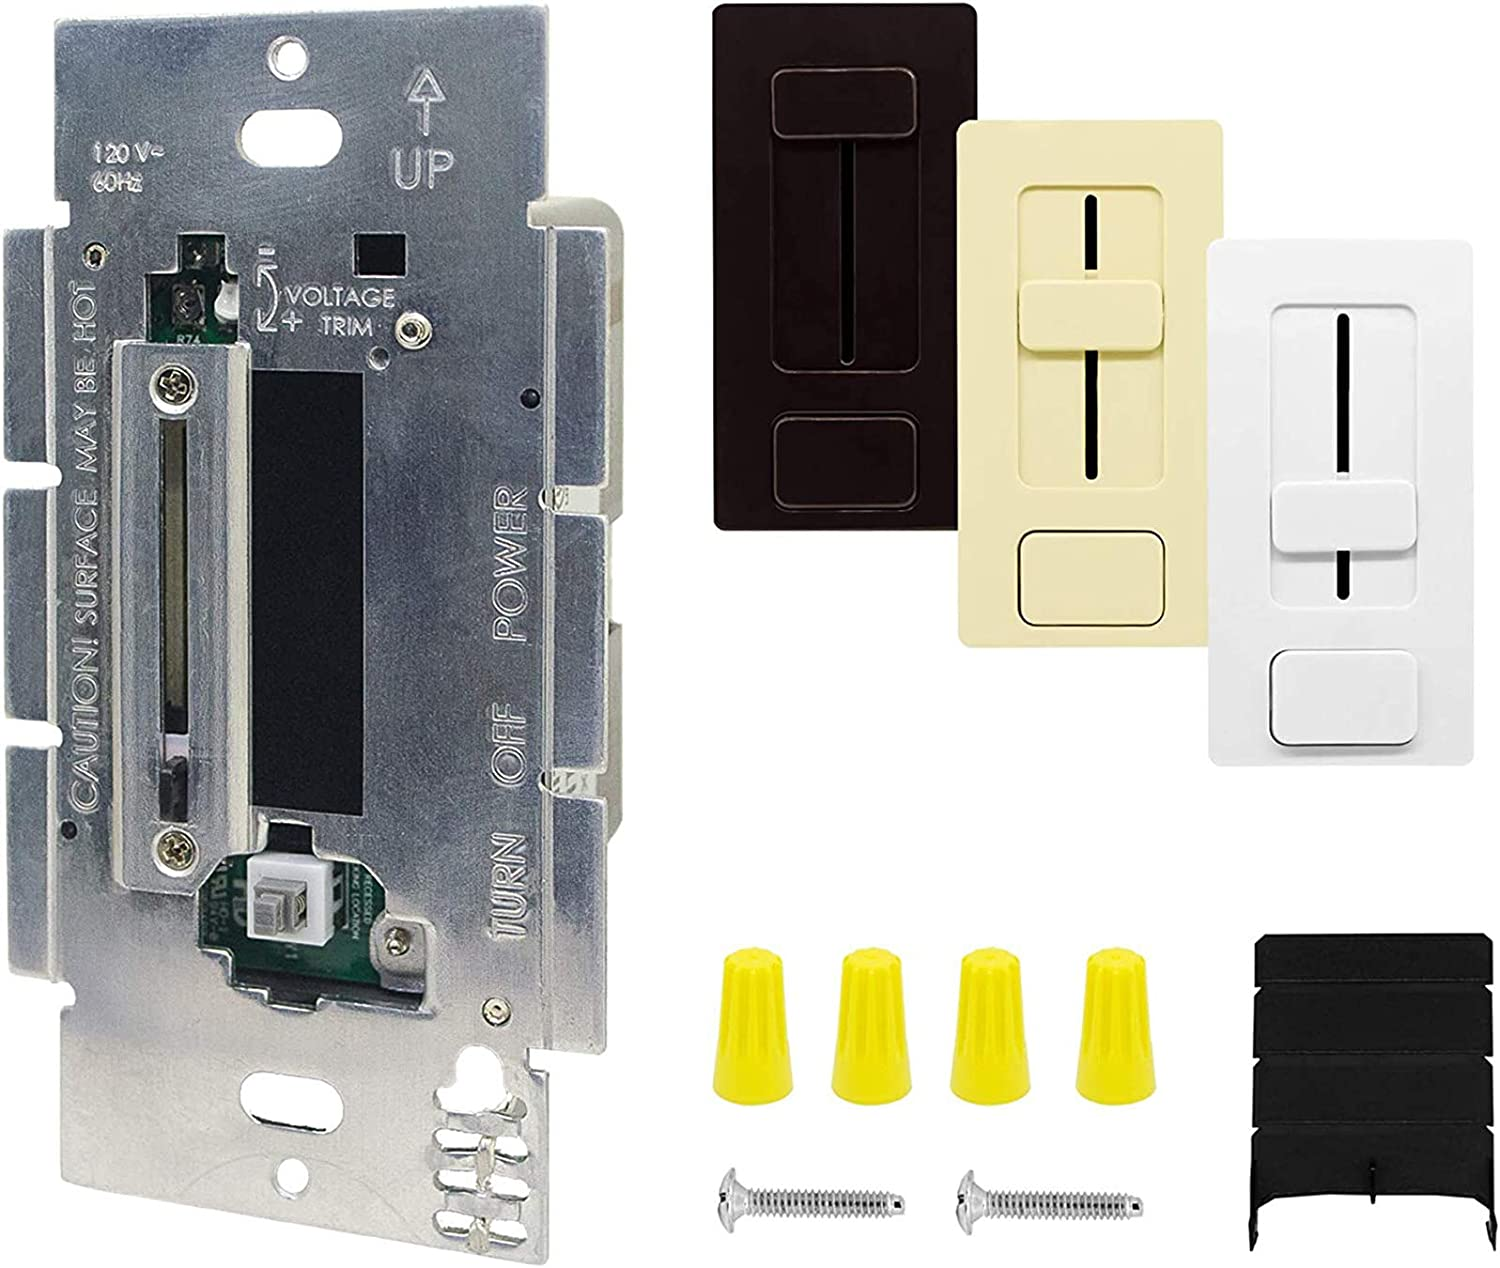 HitLights SWX-12V-060-30-U Max 46% OFF LED Driver and Switch Weekly update Dimmer Single I